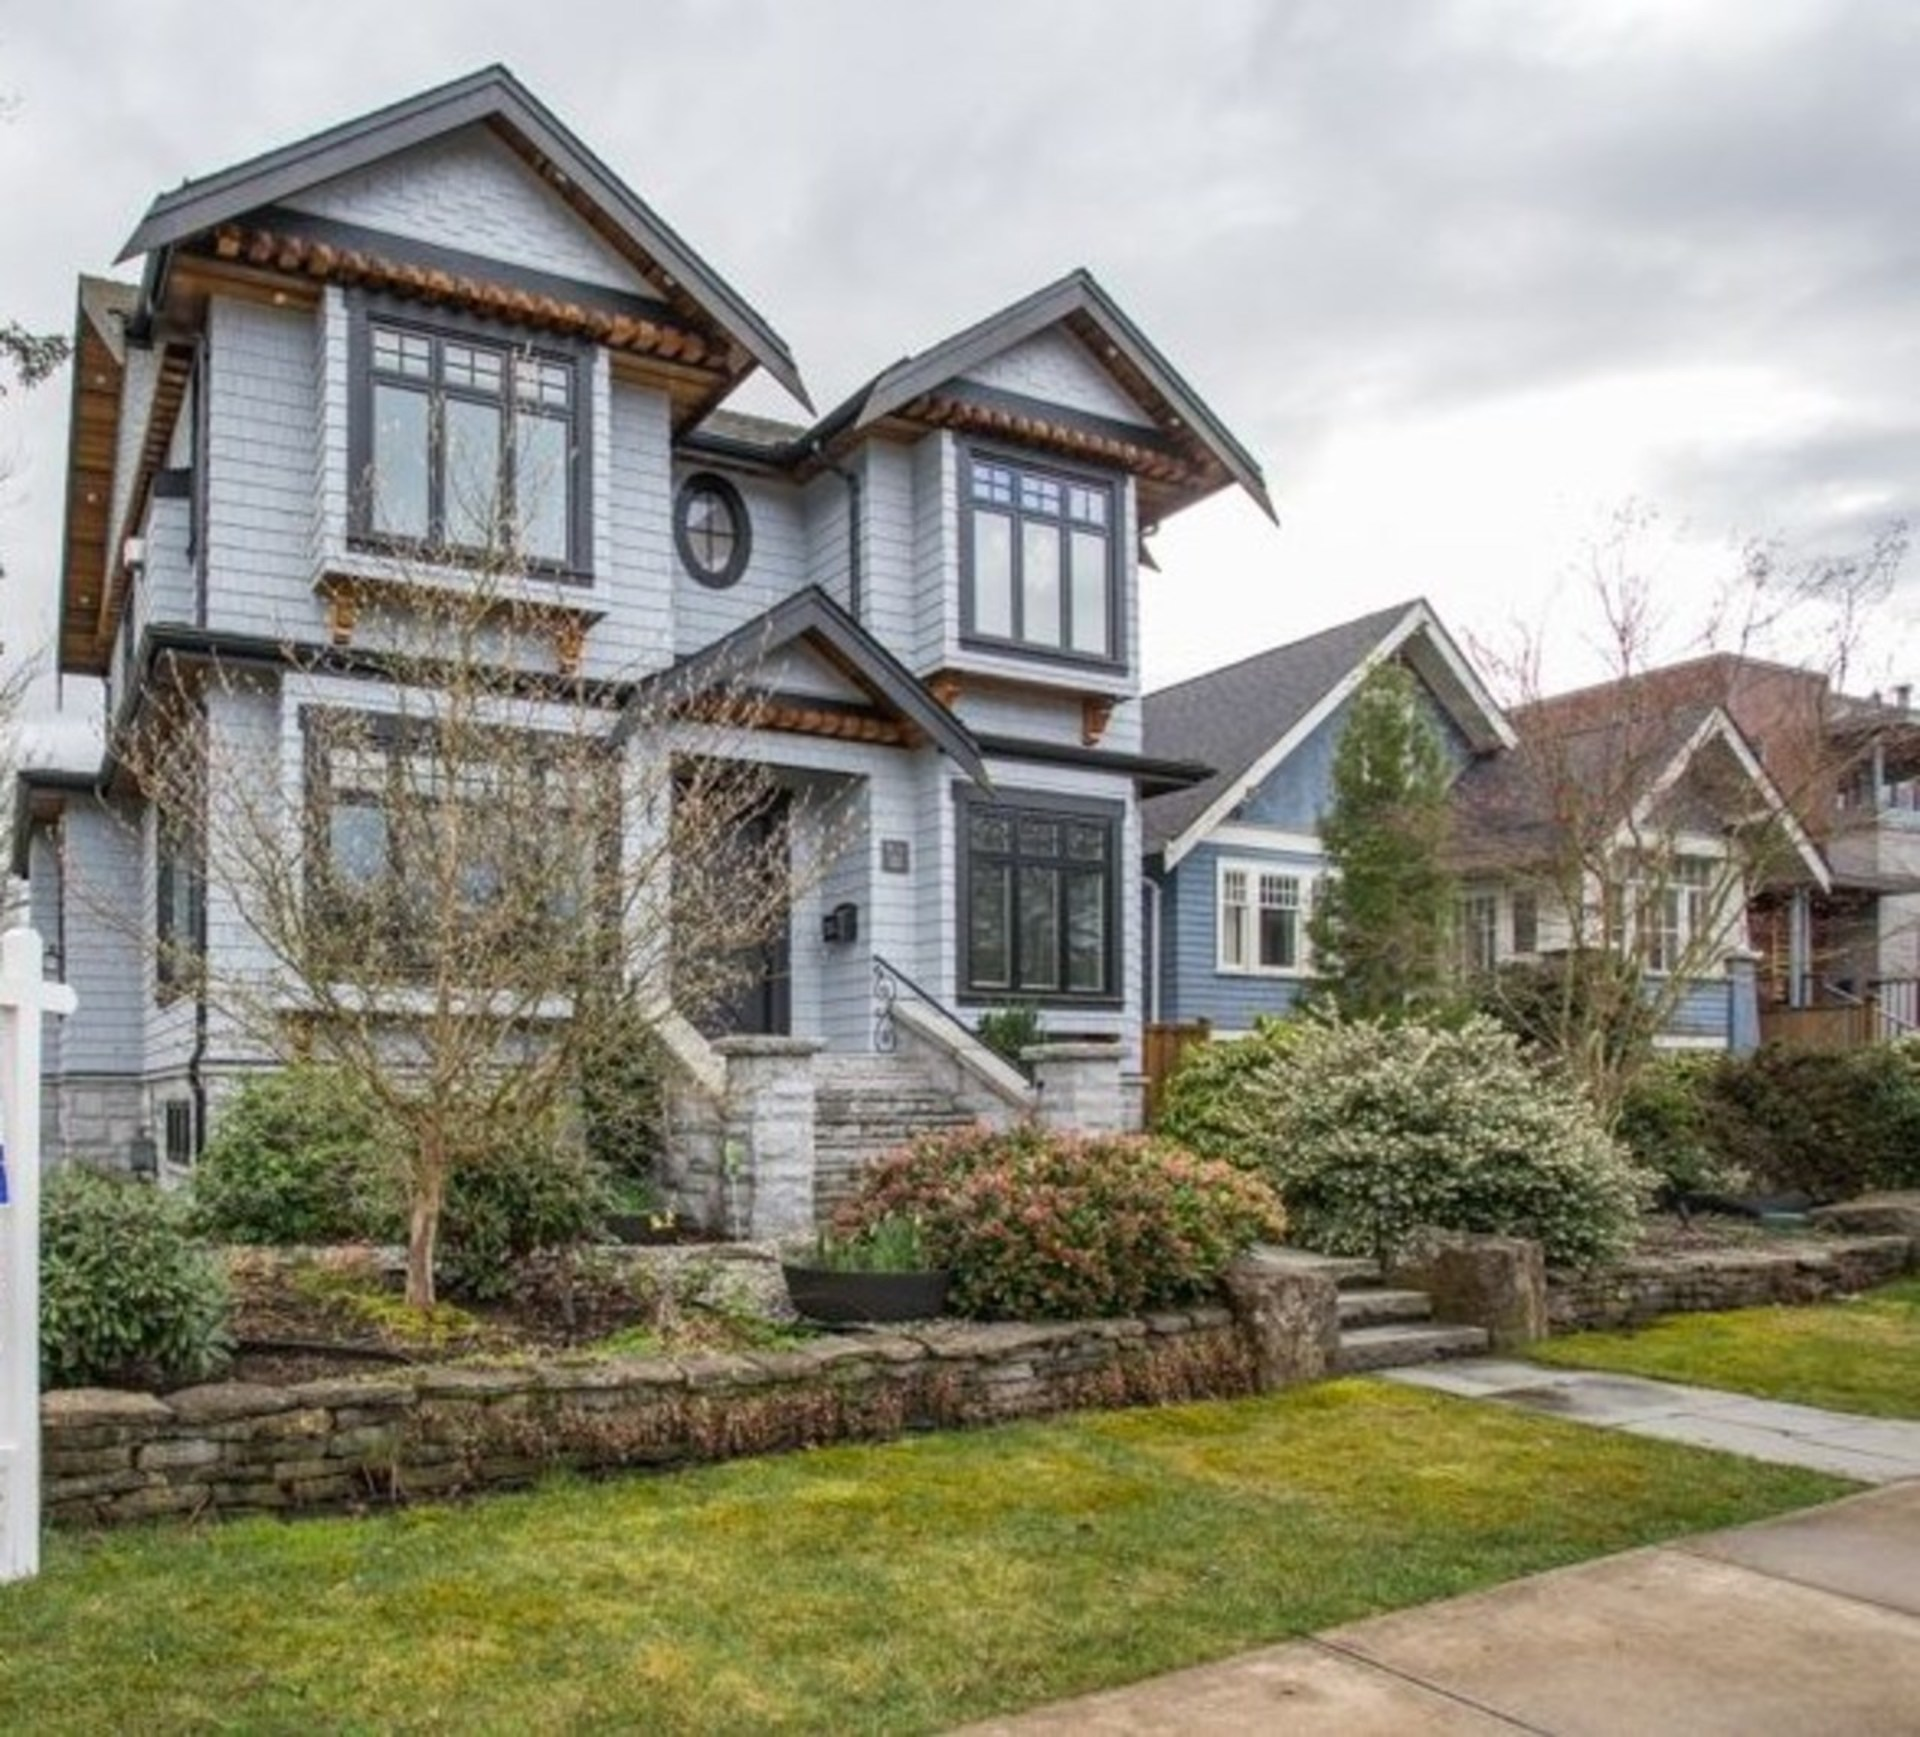 904-w-20th-avenue-cambie-vancouver-west-01 at 904 W 20th Avenue, Cambie, Vancouver West